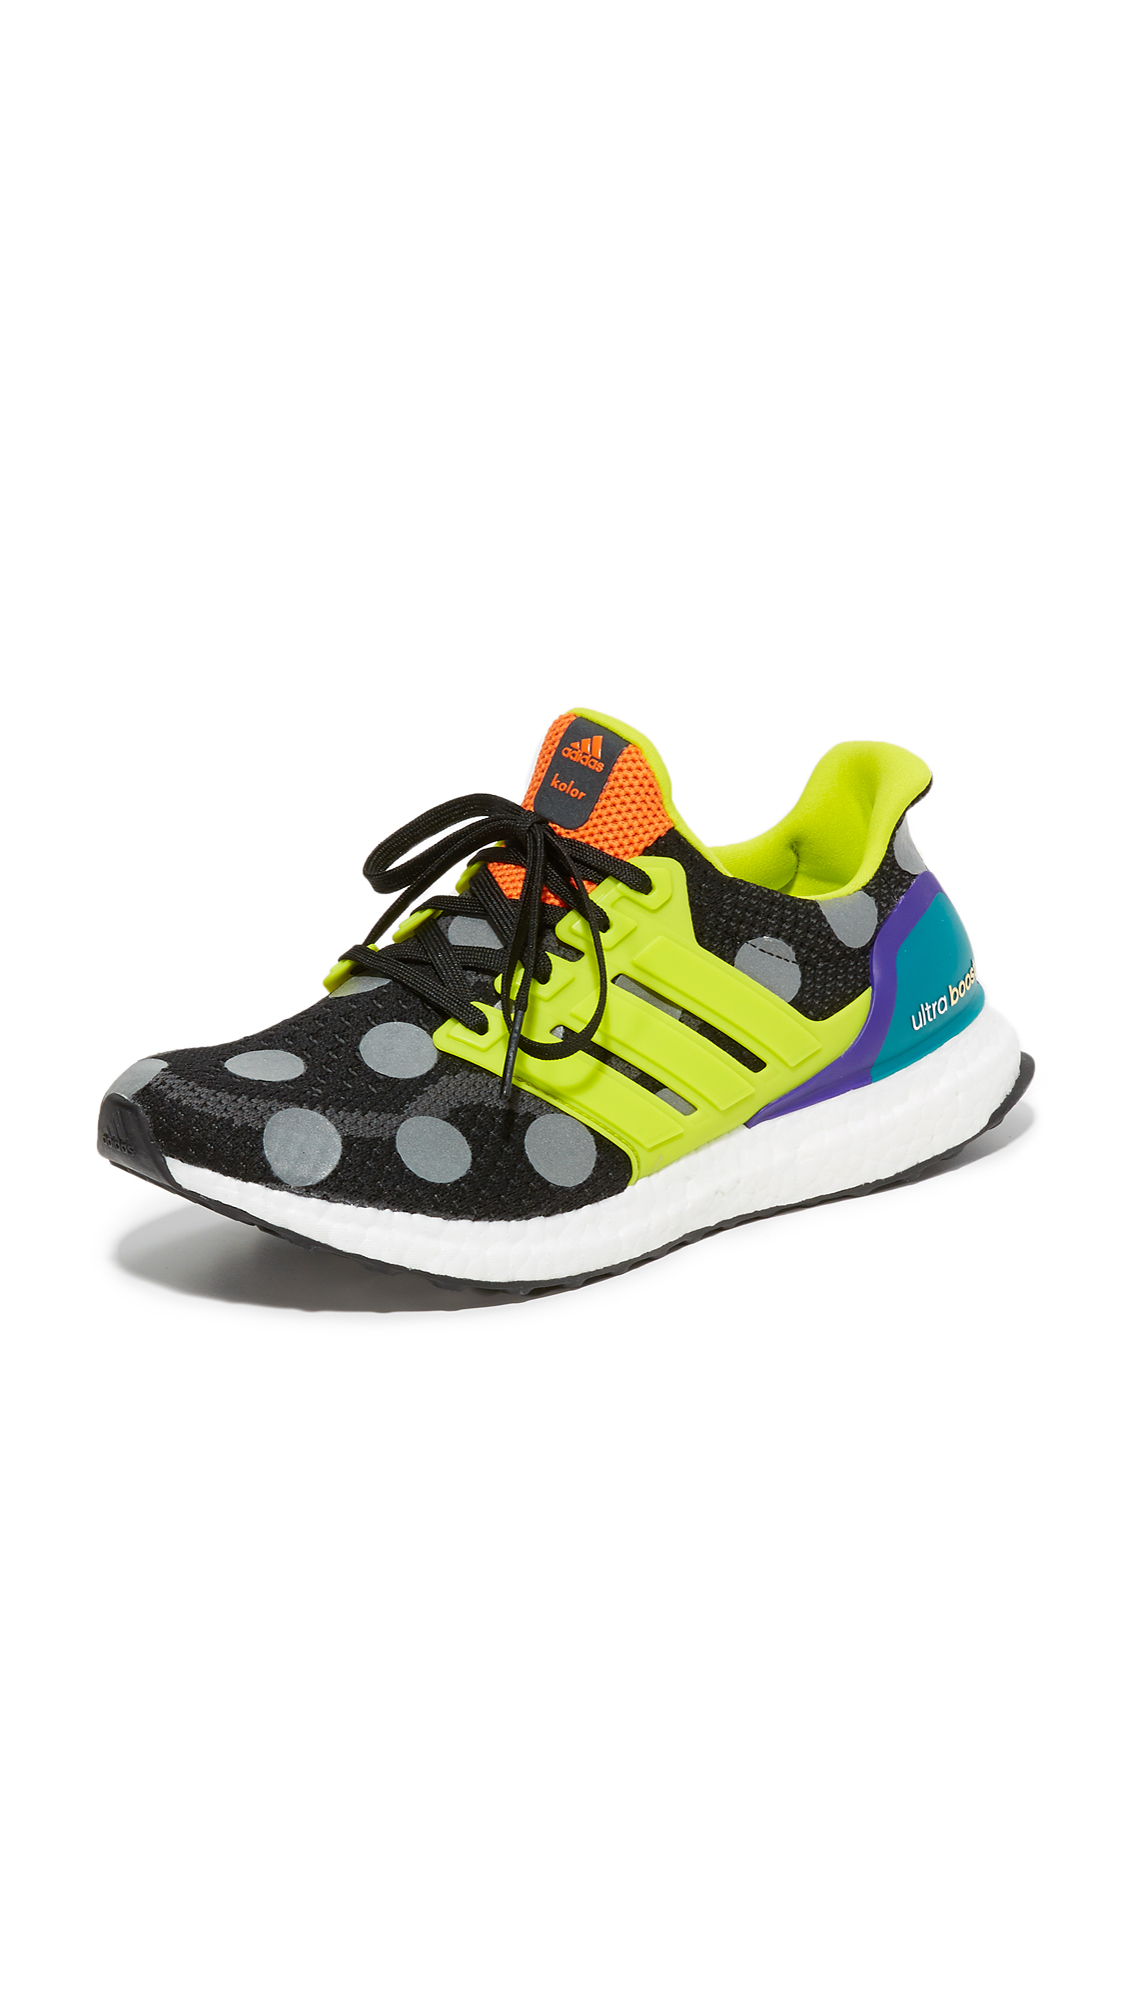 Adidas Ultra Boost Kolor Sneakers - Core Black/Solar Green/Grey at Shopbop